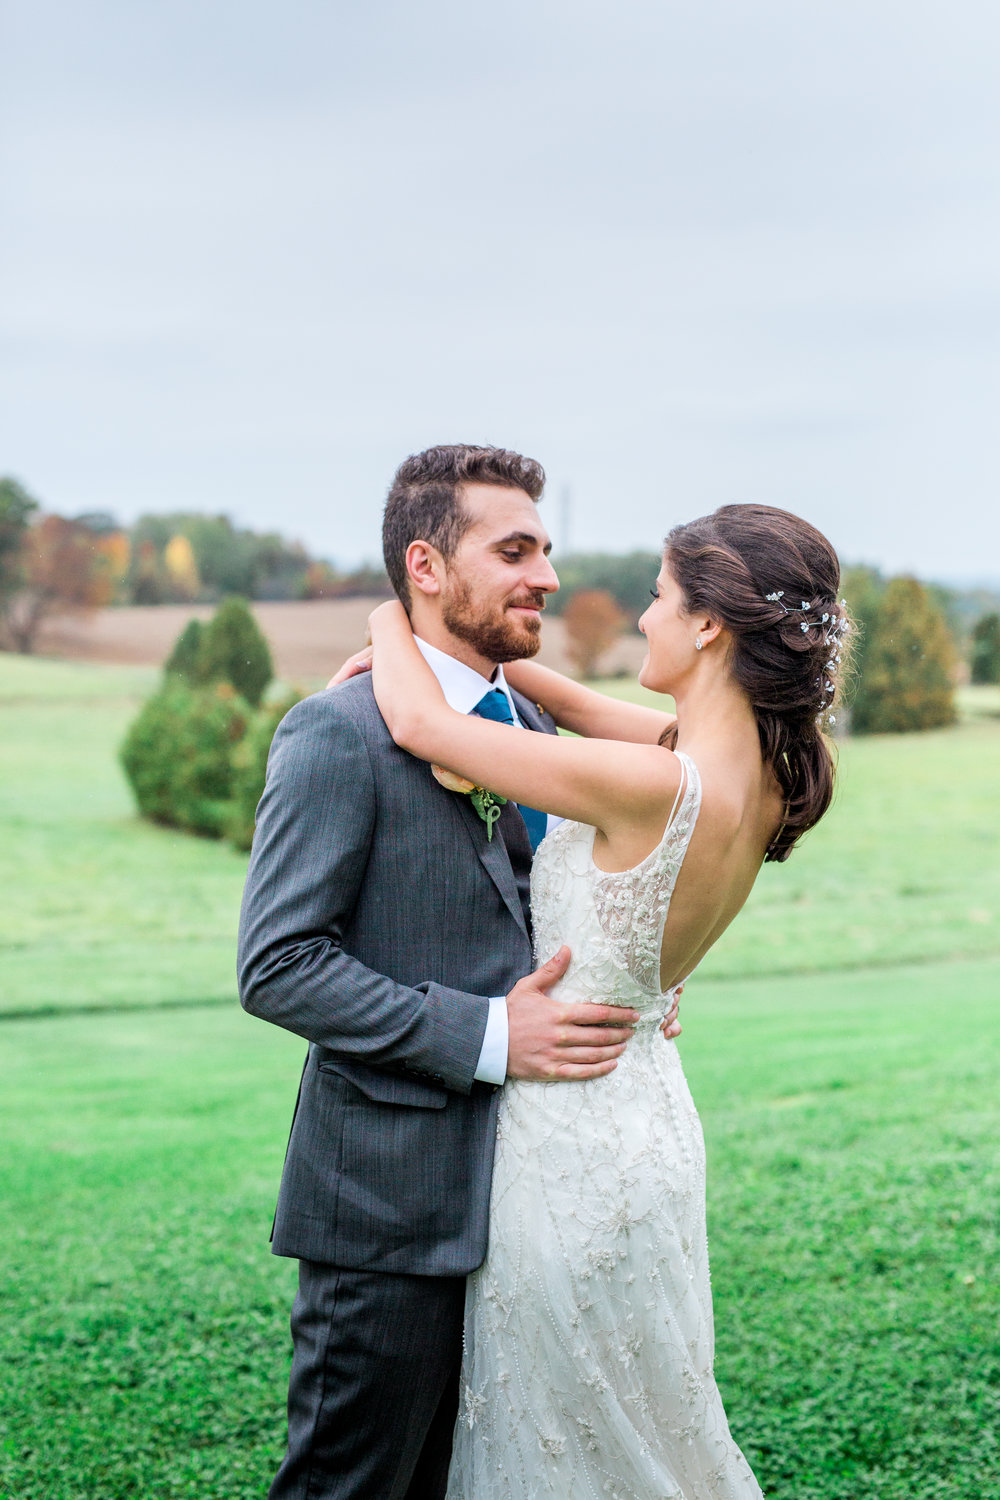 Amir-Golbazi-Danielle-Giroux-Photography_Toronto-Wedding_Cedarwood_Rachel-Paul_454.jpg